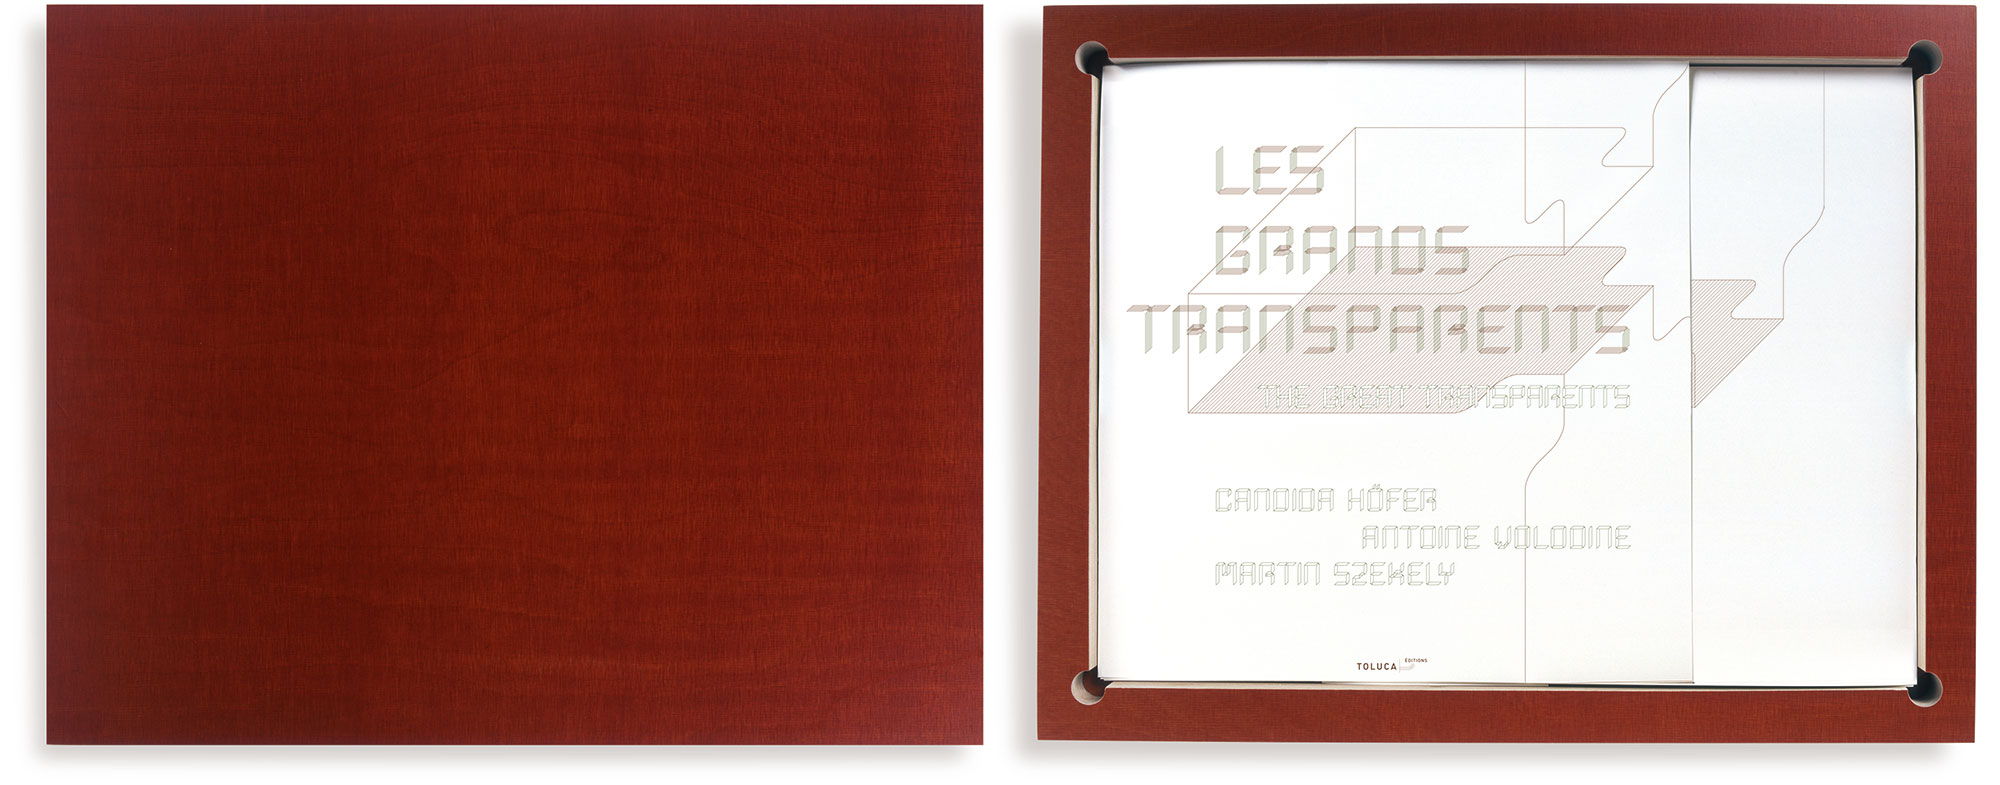 Candida Höfer (photos), Antoine Volodine (text), Martin Szekely (case), Les Grands Transparents, 2006 (51,2 x 40,3 x 3,5 cm)